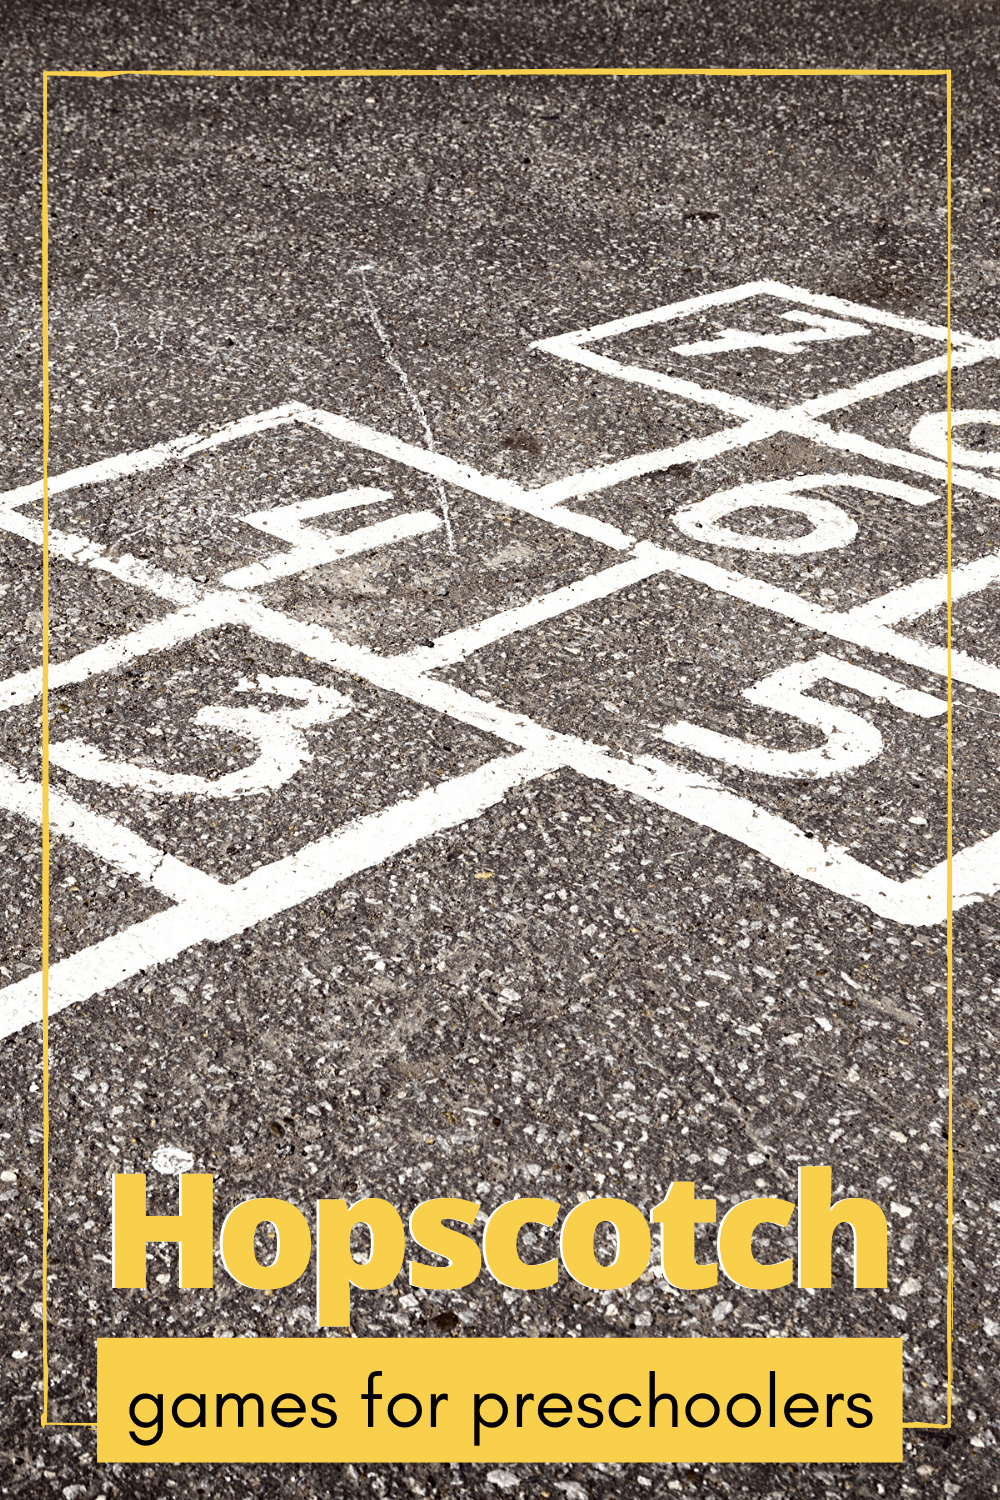 Turn hopscotch game for preschoolers into a fun teaching session with these five tips! Your kids will love learning this way!